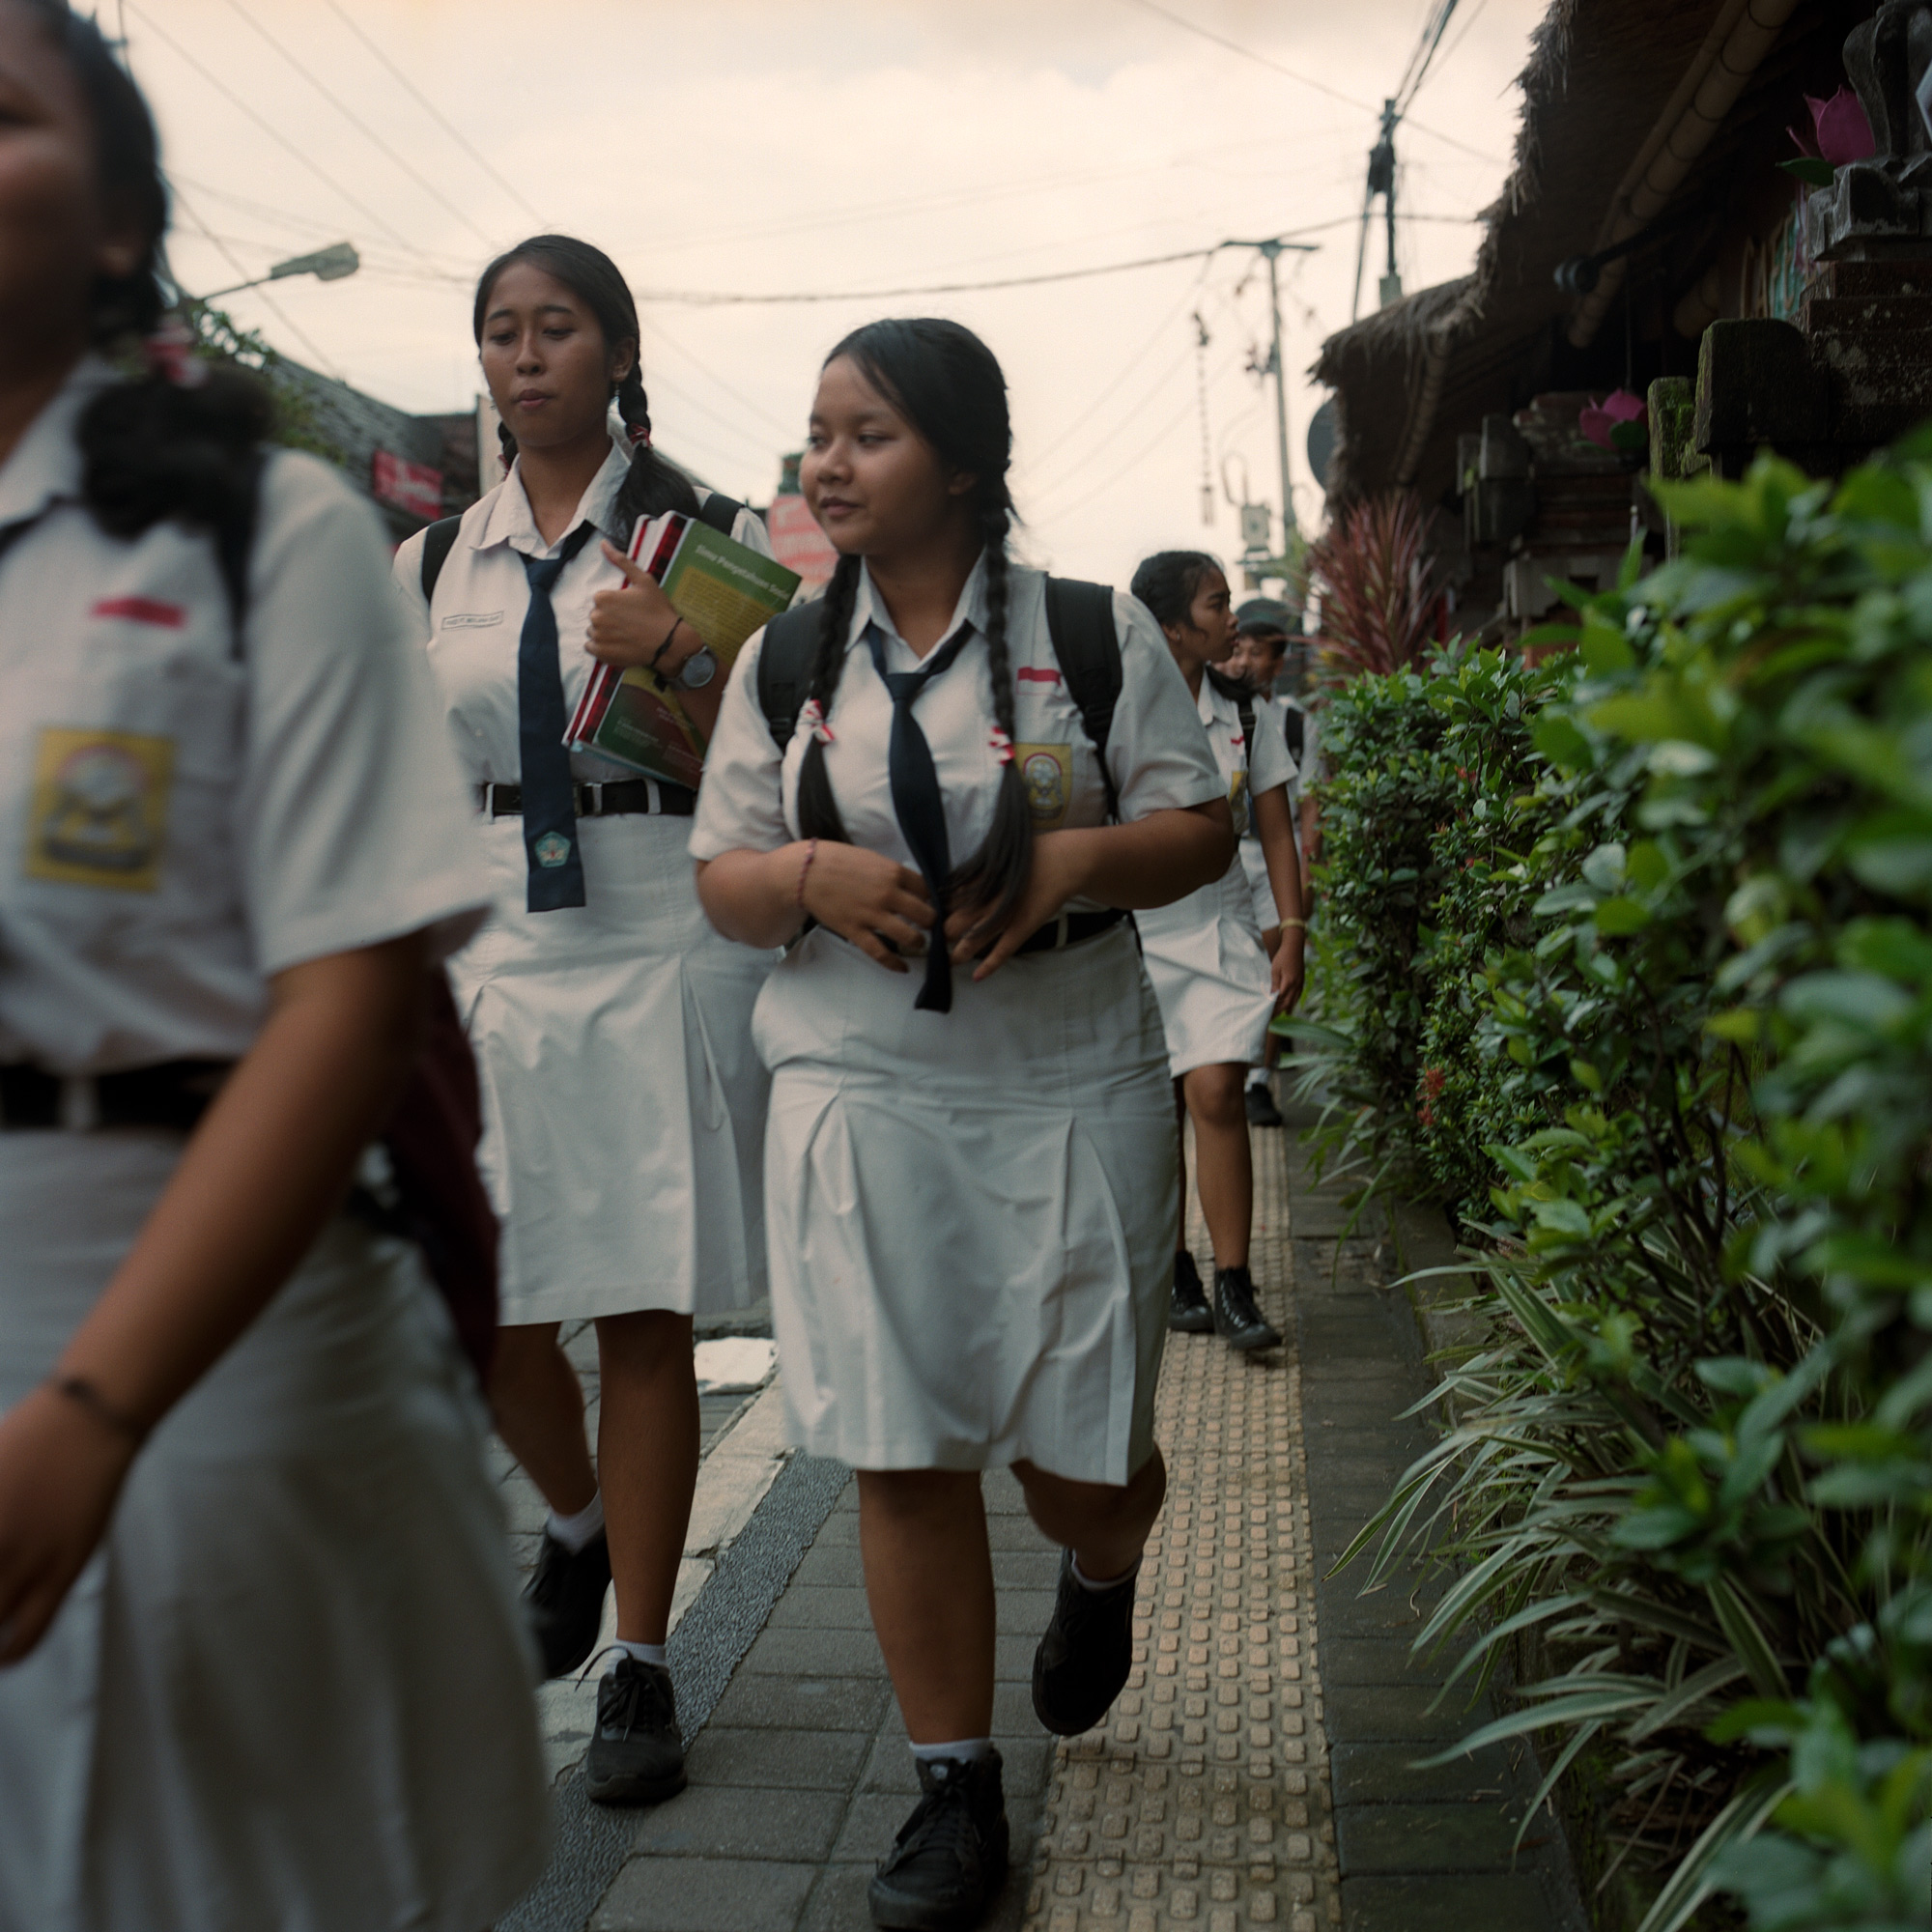 School girls, Ubud Bali, Eastern Travels, Photography by Ioannis Koussertari